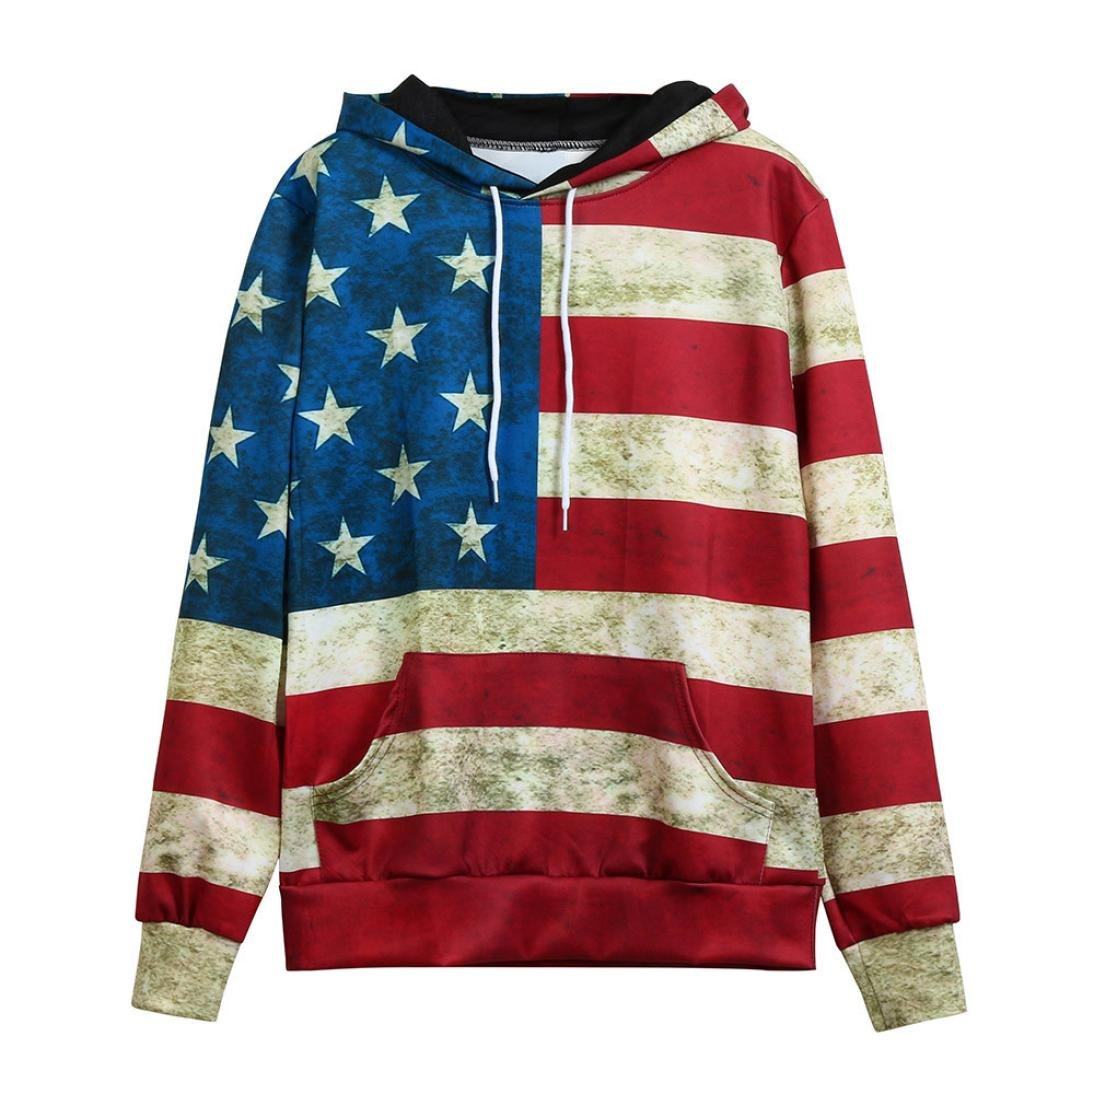 Napoo 2017 New Unisex Fashion American Flag Print Pockets Casual Pullover Hoodie Sweatshirt (XXL, Red) by Napoo